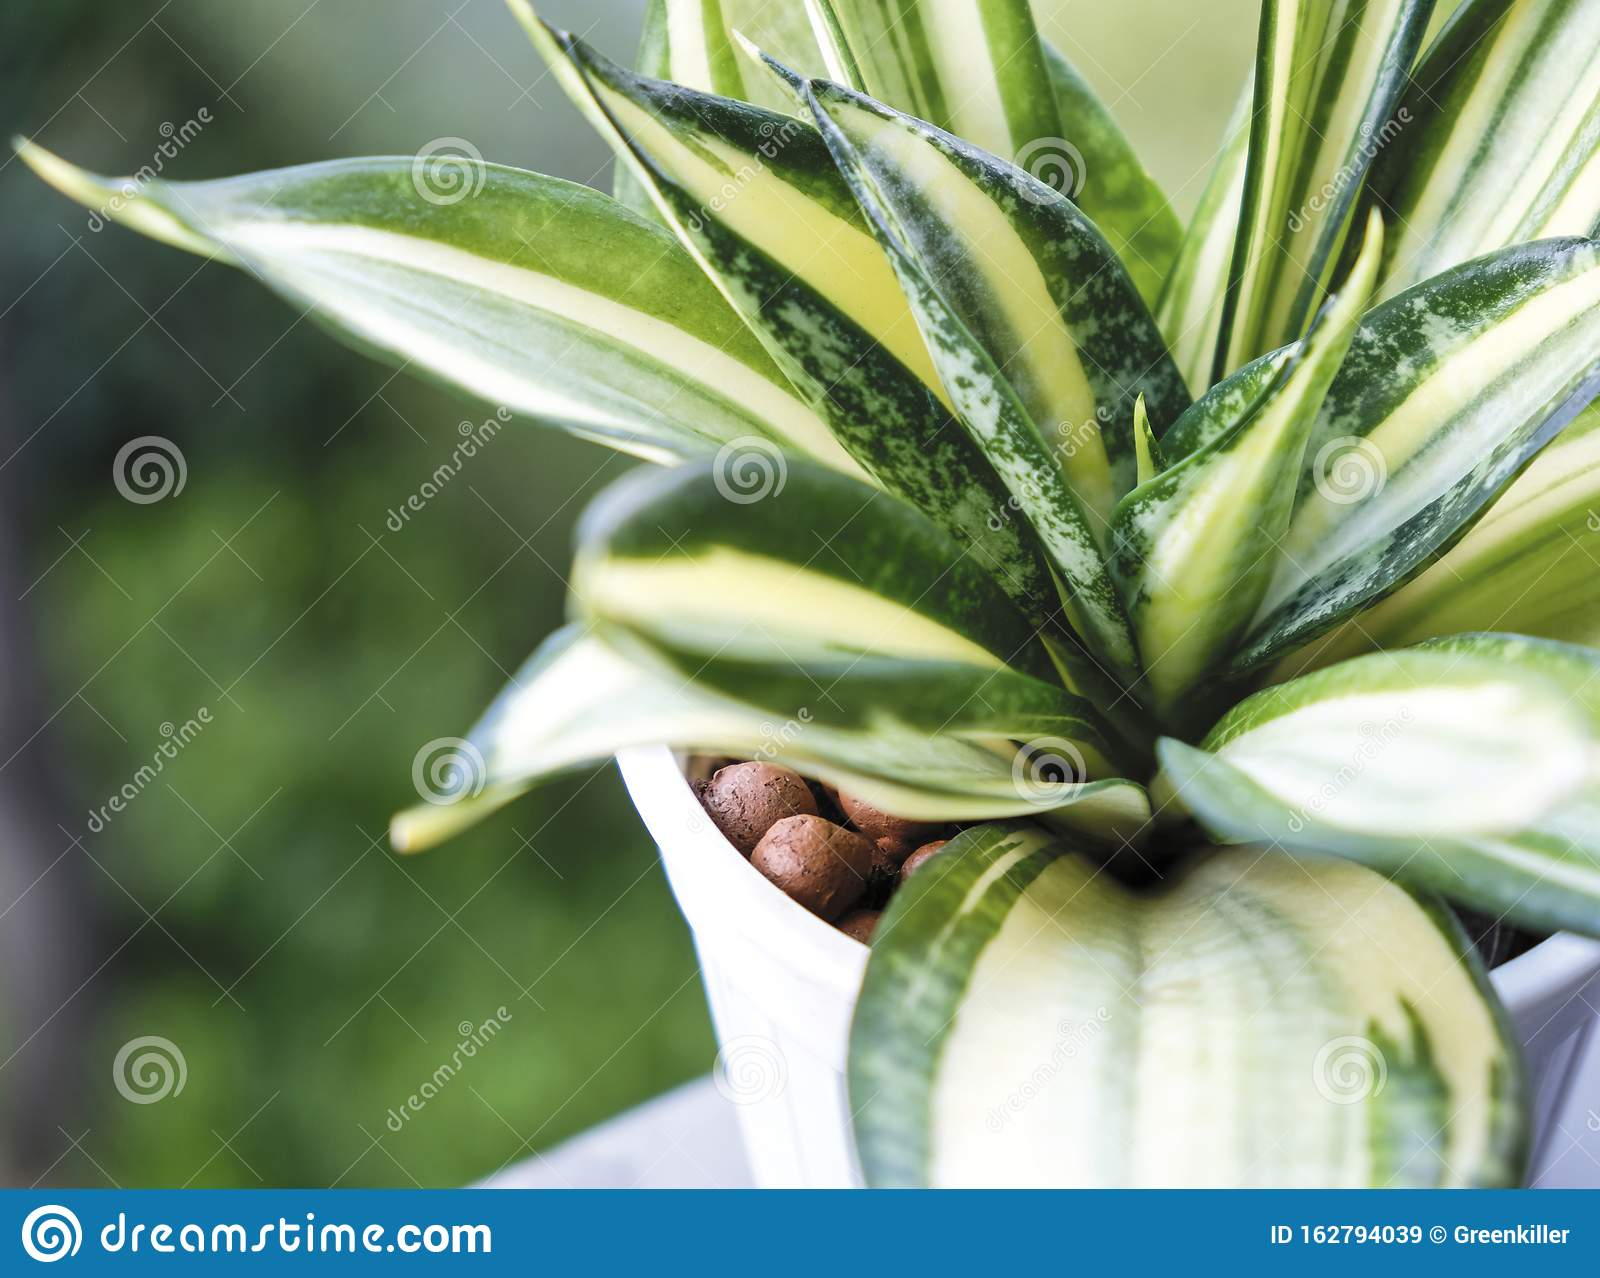 7 623 Plant Snake Photos Free Royalty Free Stock Photos From Dreamstime